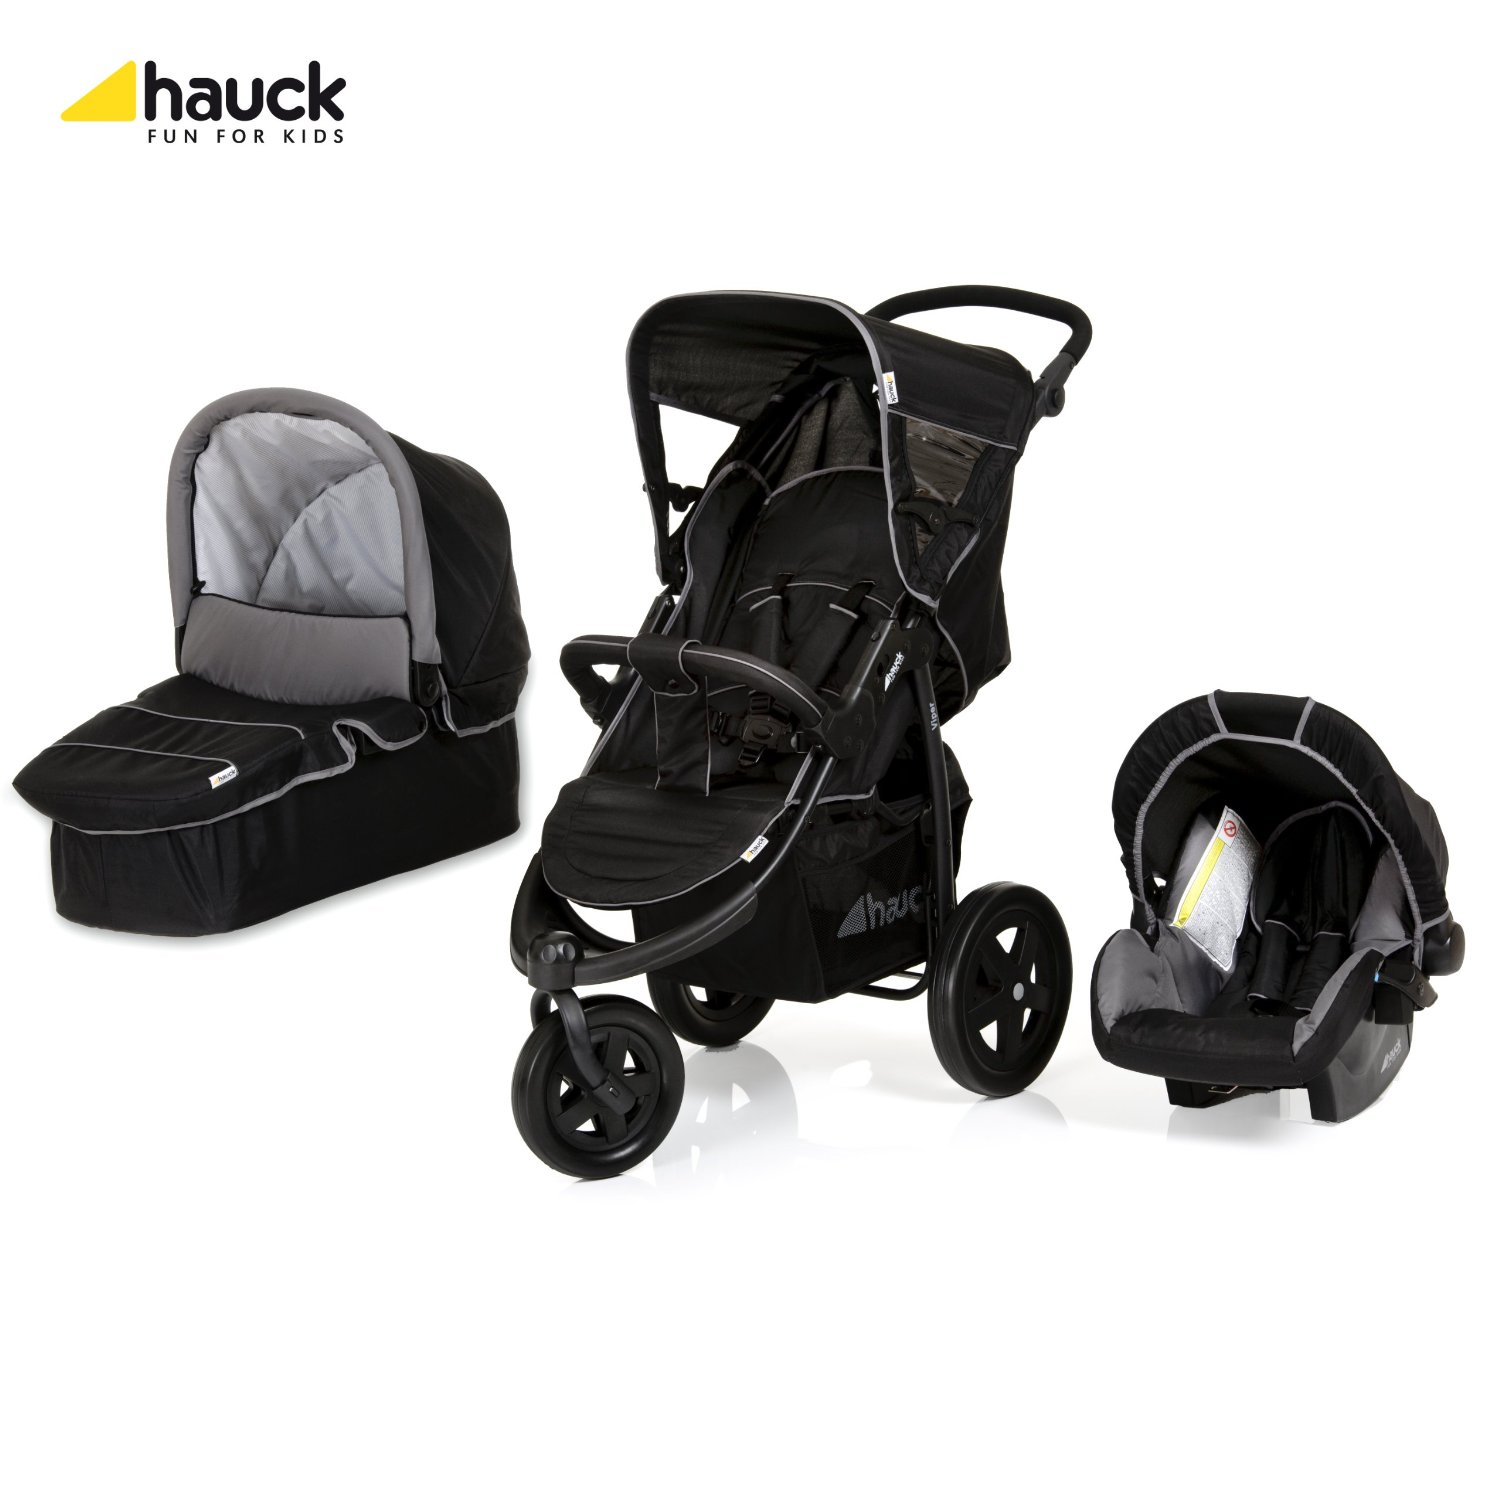 hauck kinderwagen vergleich kombikinderwagen buggys im. Black Bedroom Furniture Sets. Home Design Ideas